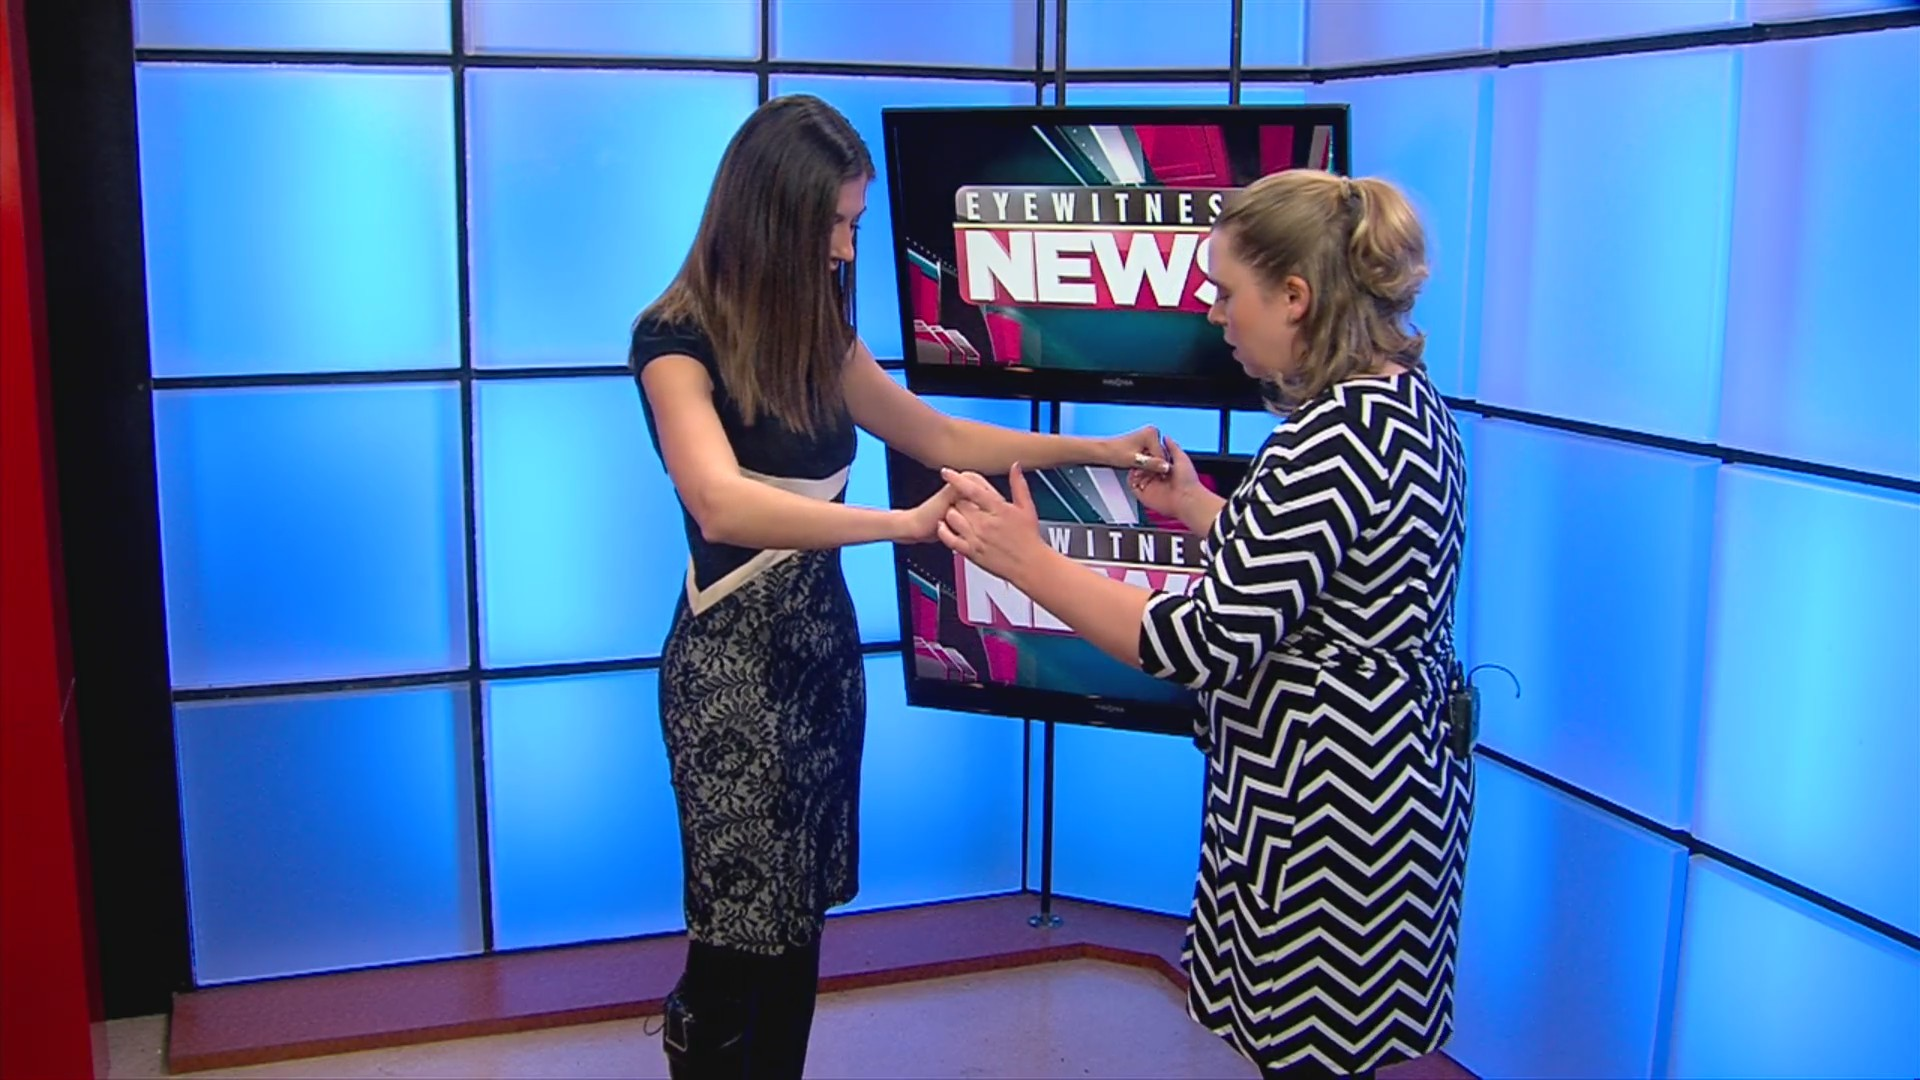 Kathleen Cohen makes her Dancing with Eyewitness News debut